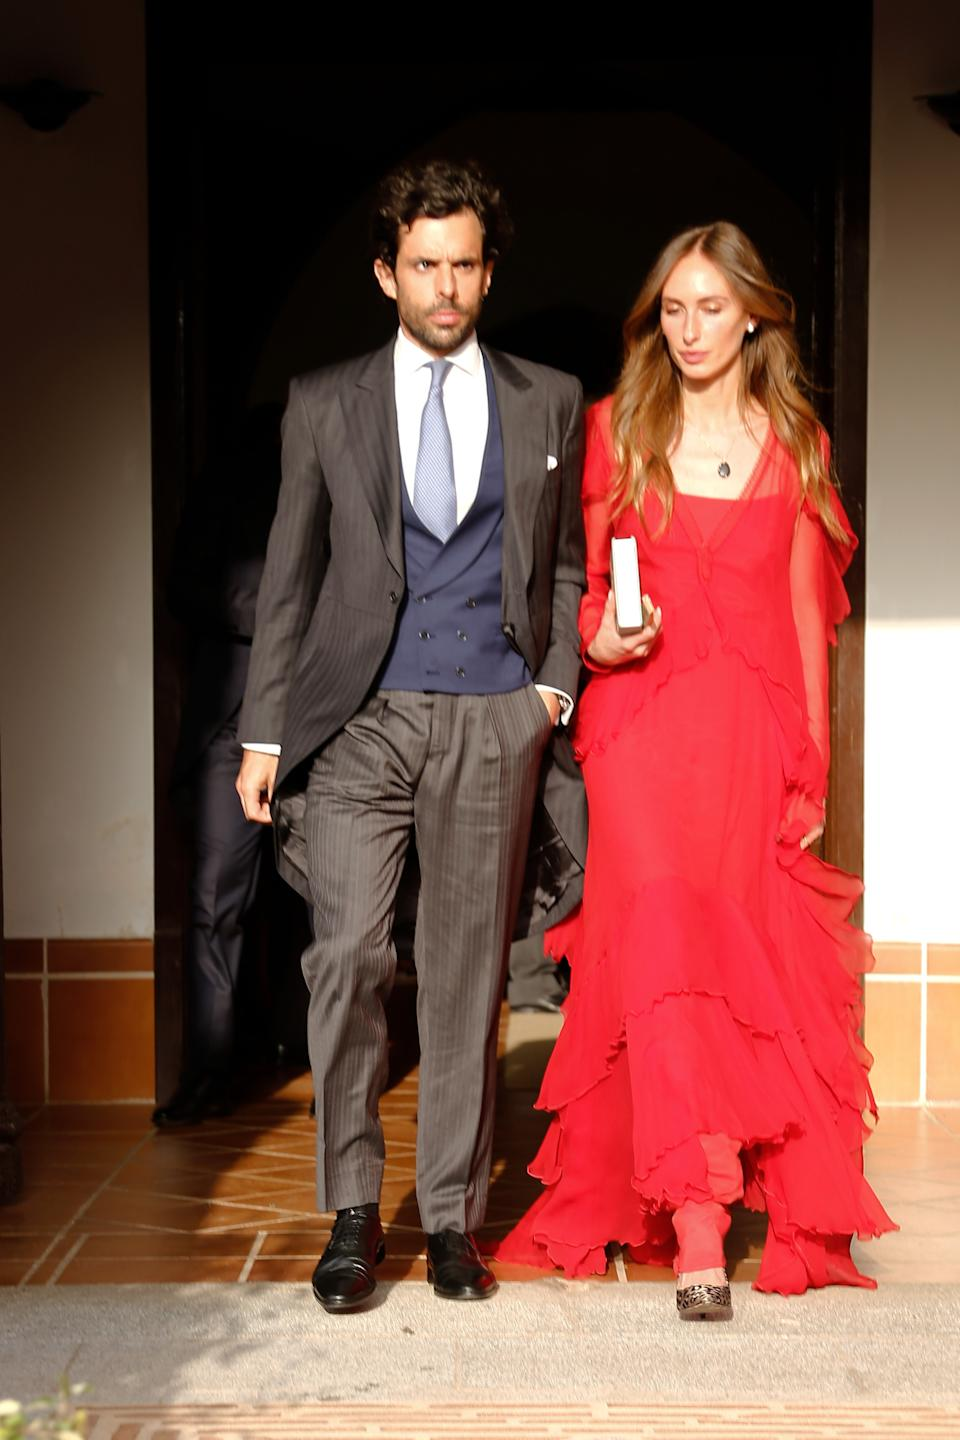 CIUDAD REAL, SPAIN - JULY 11: Alonso Aznar and Renata Collado at the wedding of Felipe Cortina and Amelia Millan on July 11, 2021 in Ciudad Real, Spain. (Photo By Javier Ramirez/Europa Press via Getty Images)